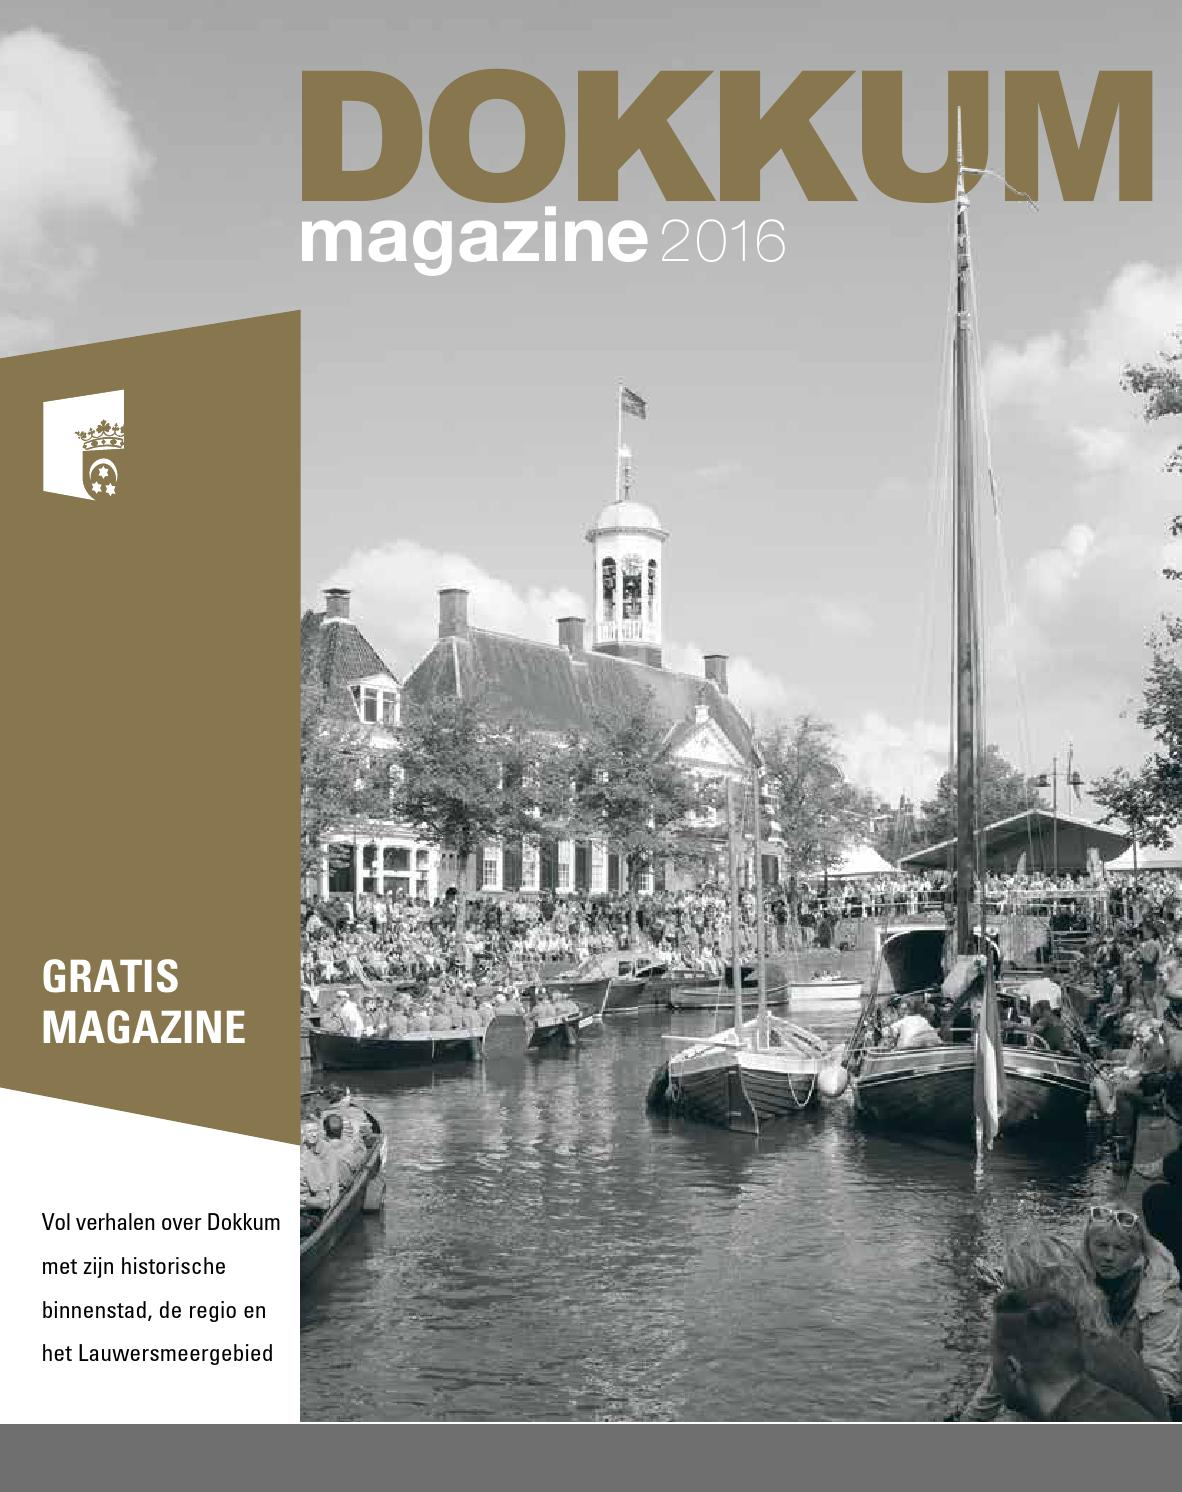 Dokkum magazine 2016 by dokkum magazine   issuu